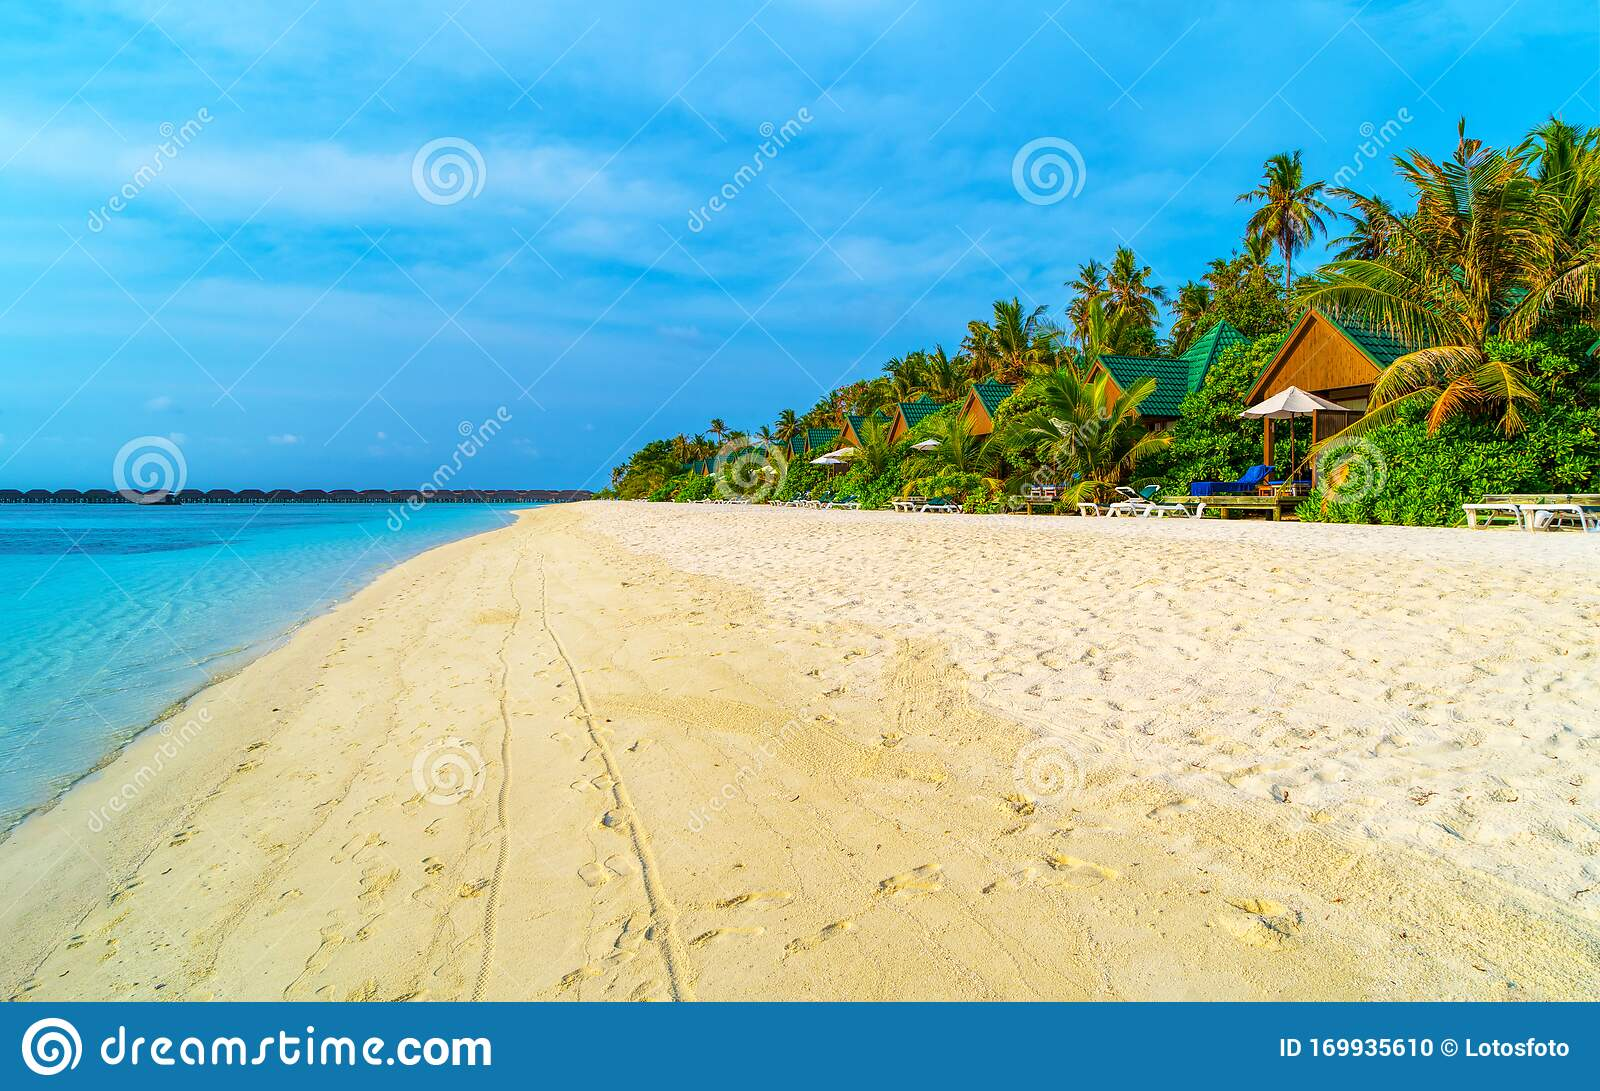 Tropical Bungalow On The Amazing Beach With A Palm Tree Stock Photo Image Of Hotel Polynesia 169935610